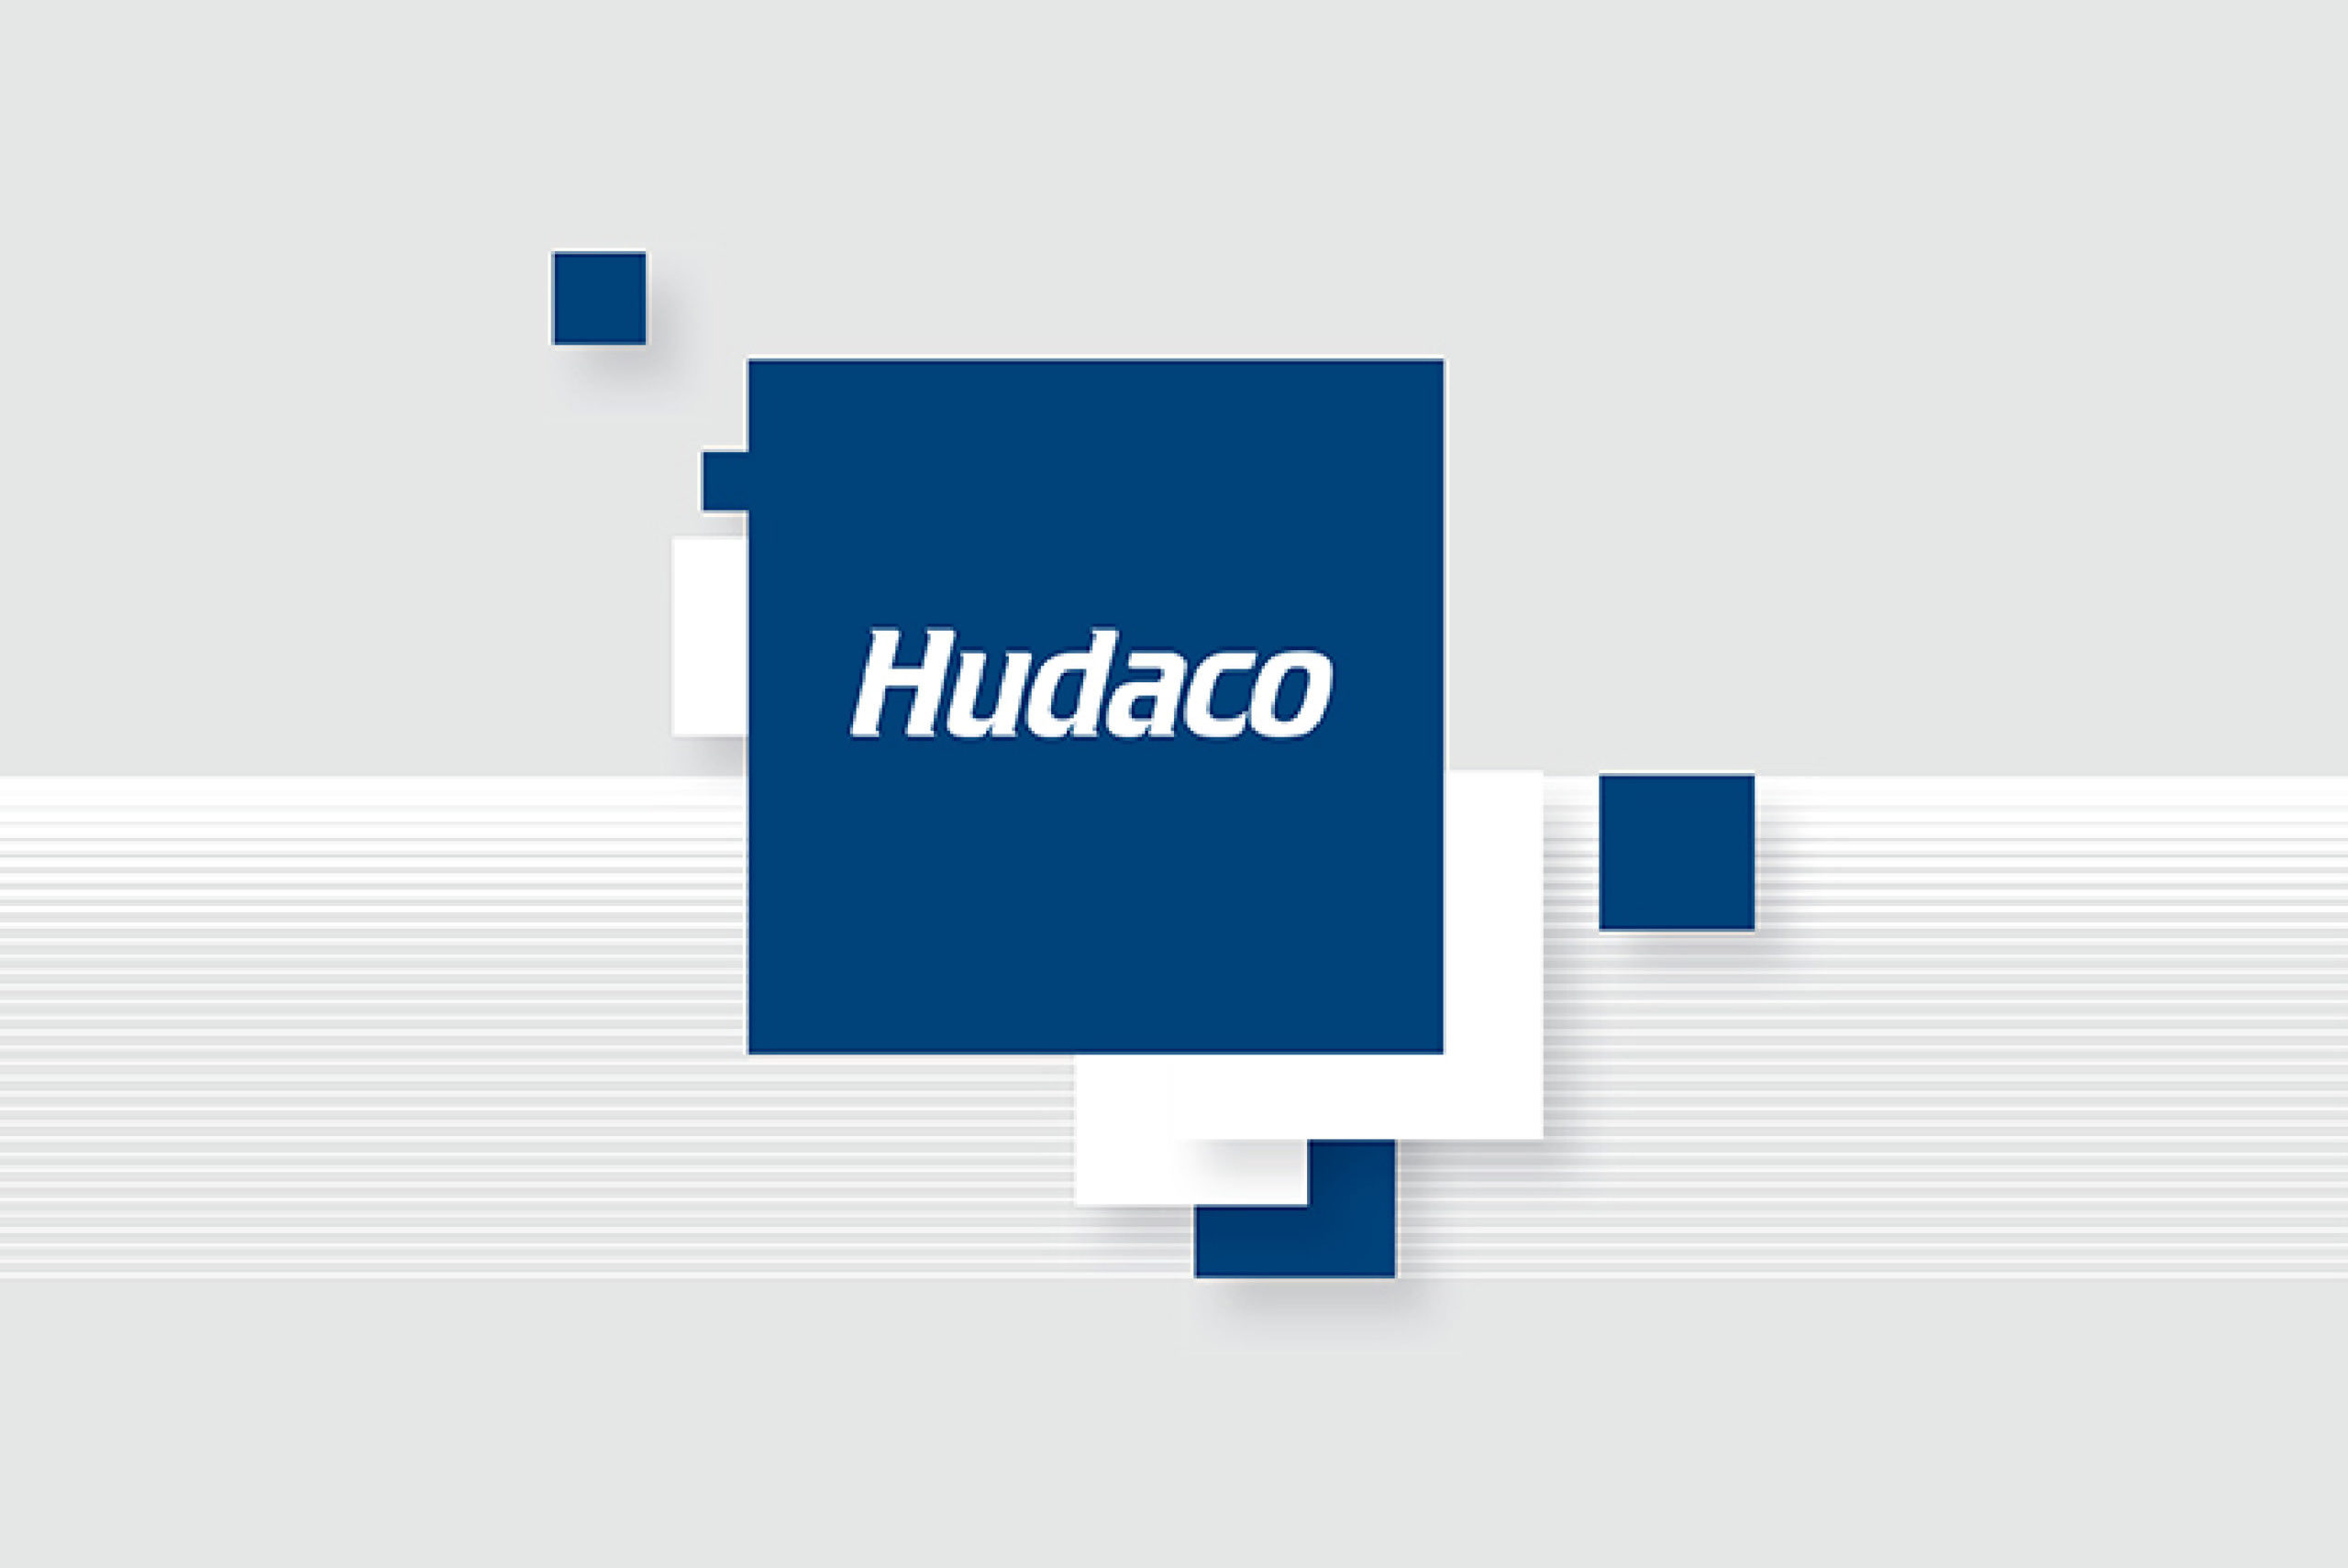 Member of the Hudaco Group